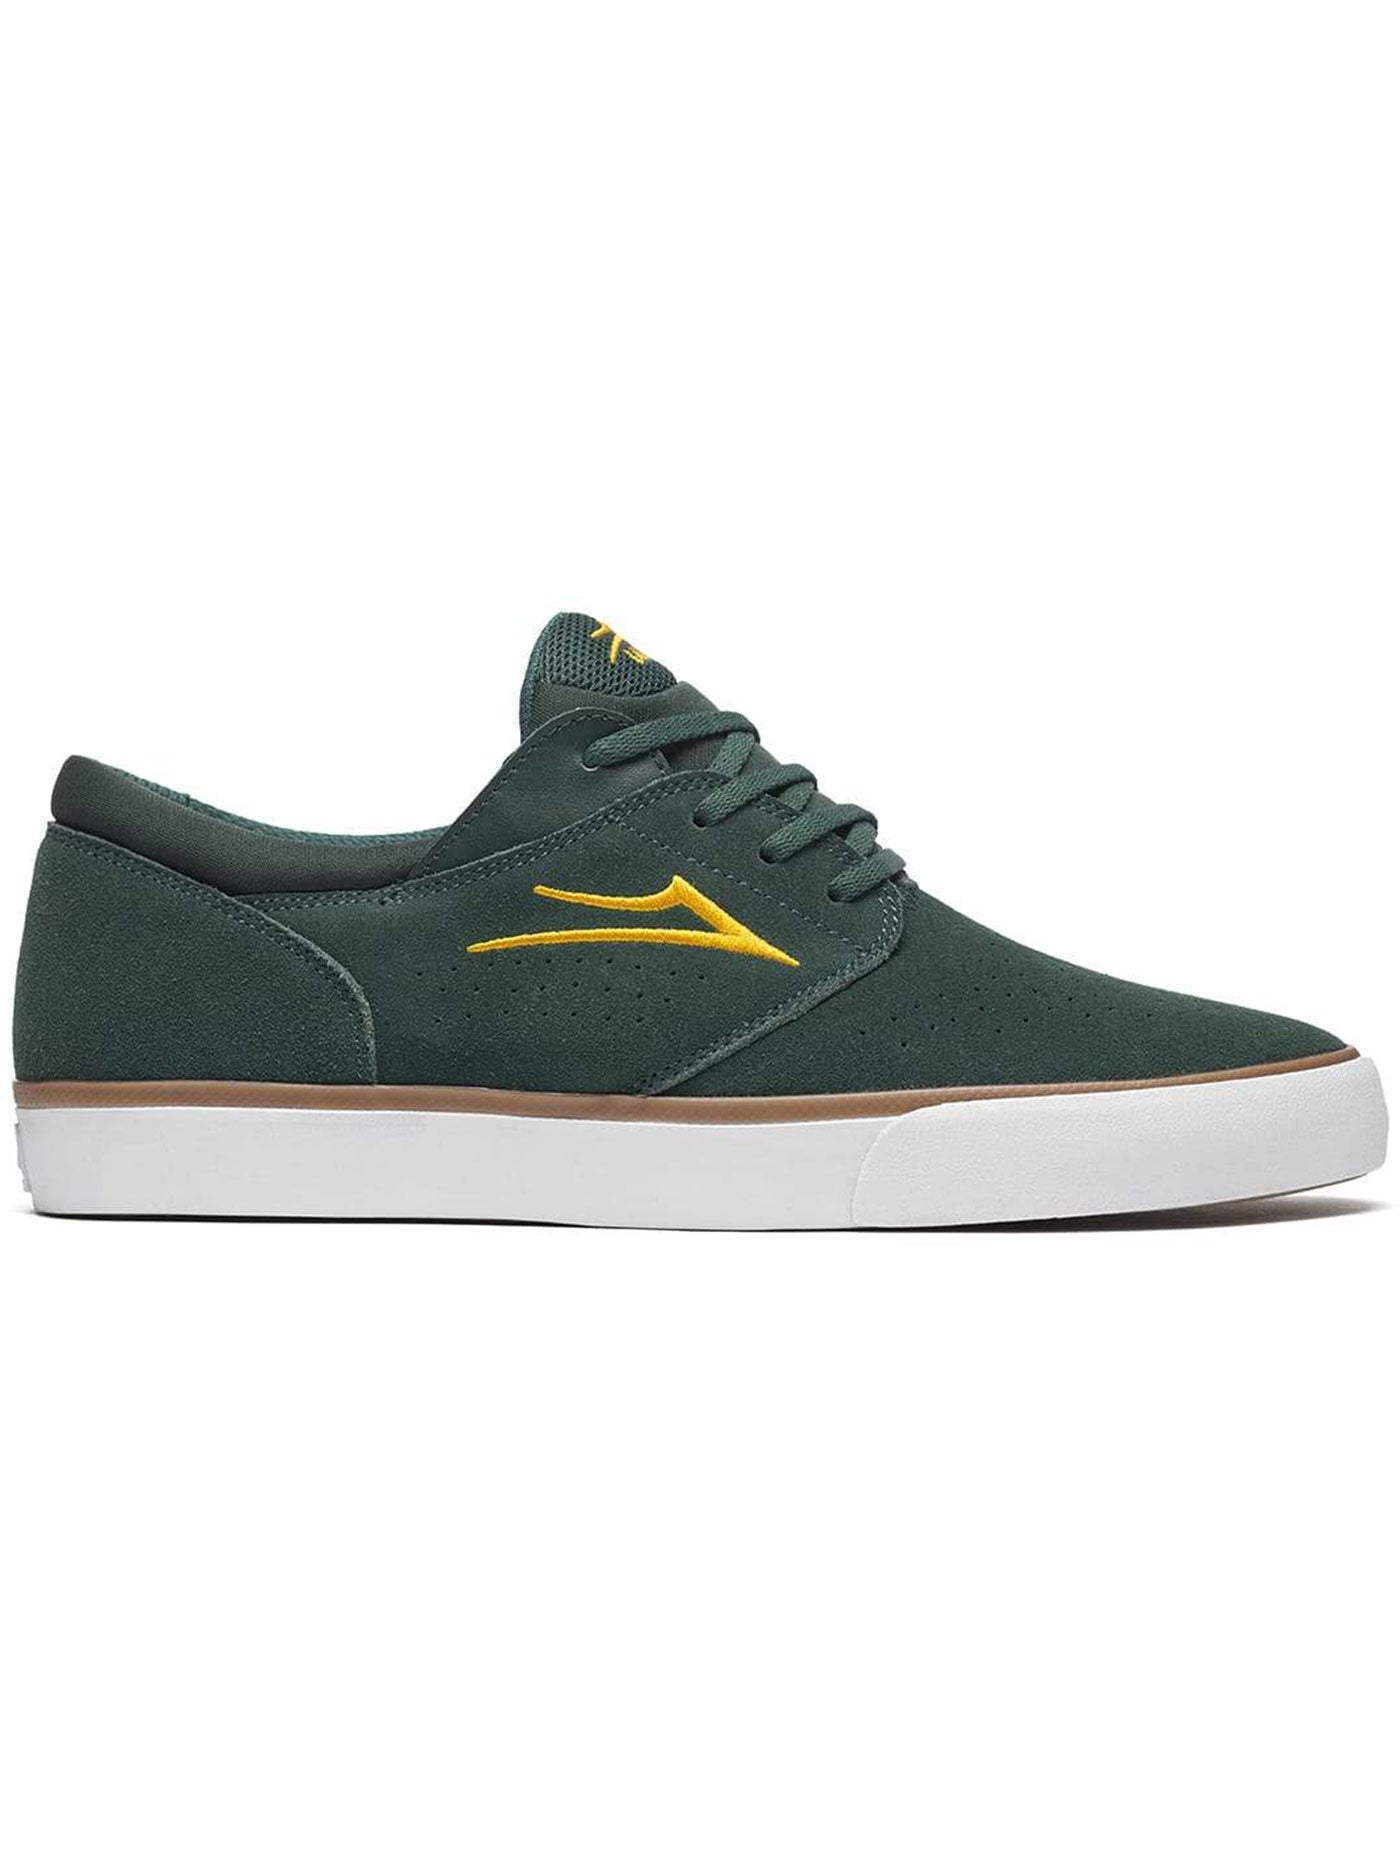 PINE SUEDE (PNS)